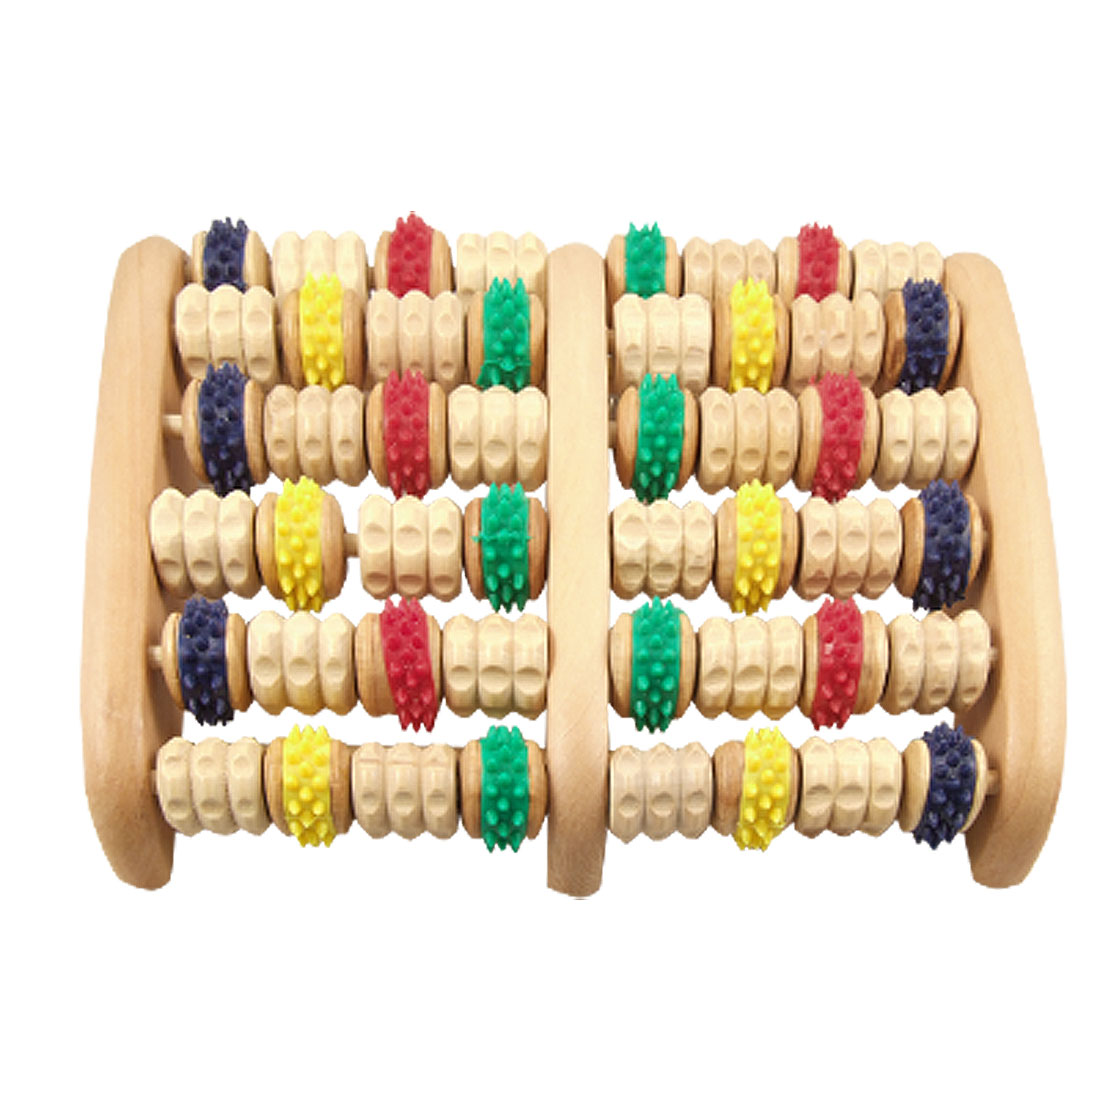 UXCELL Foot Colorful Wheels Wooden Roller Relax Stress Relief Massager Board